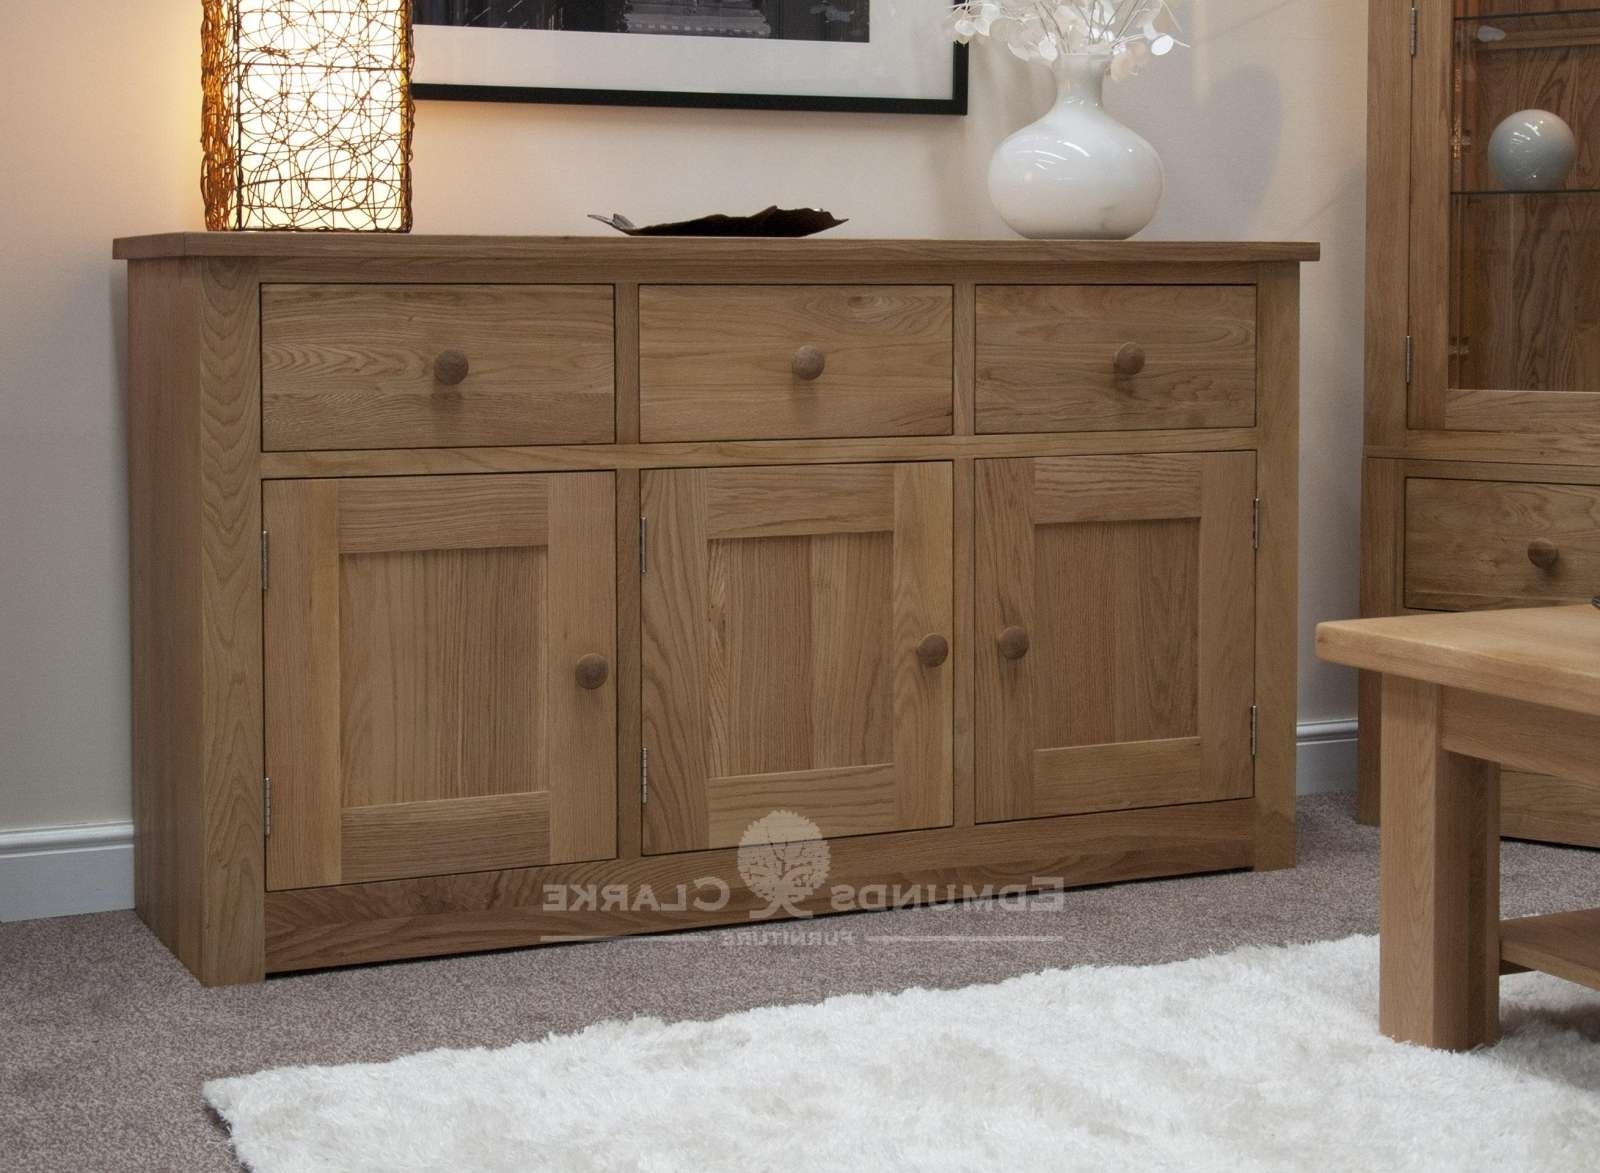 Oak Large Sideboard – Oak Sideboards For The Kitchen, Dining Room With Regard To Lounge Sideboards (Gallery 2 of 20)